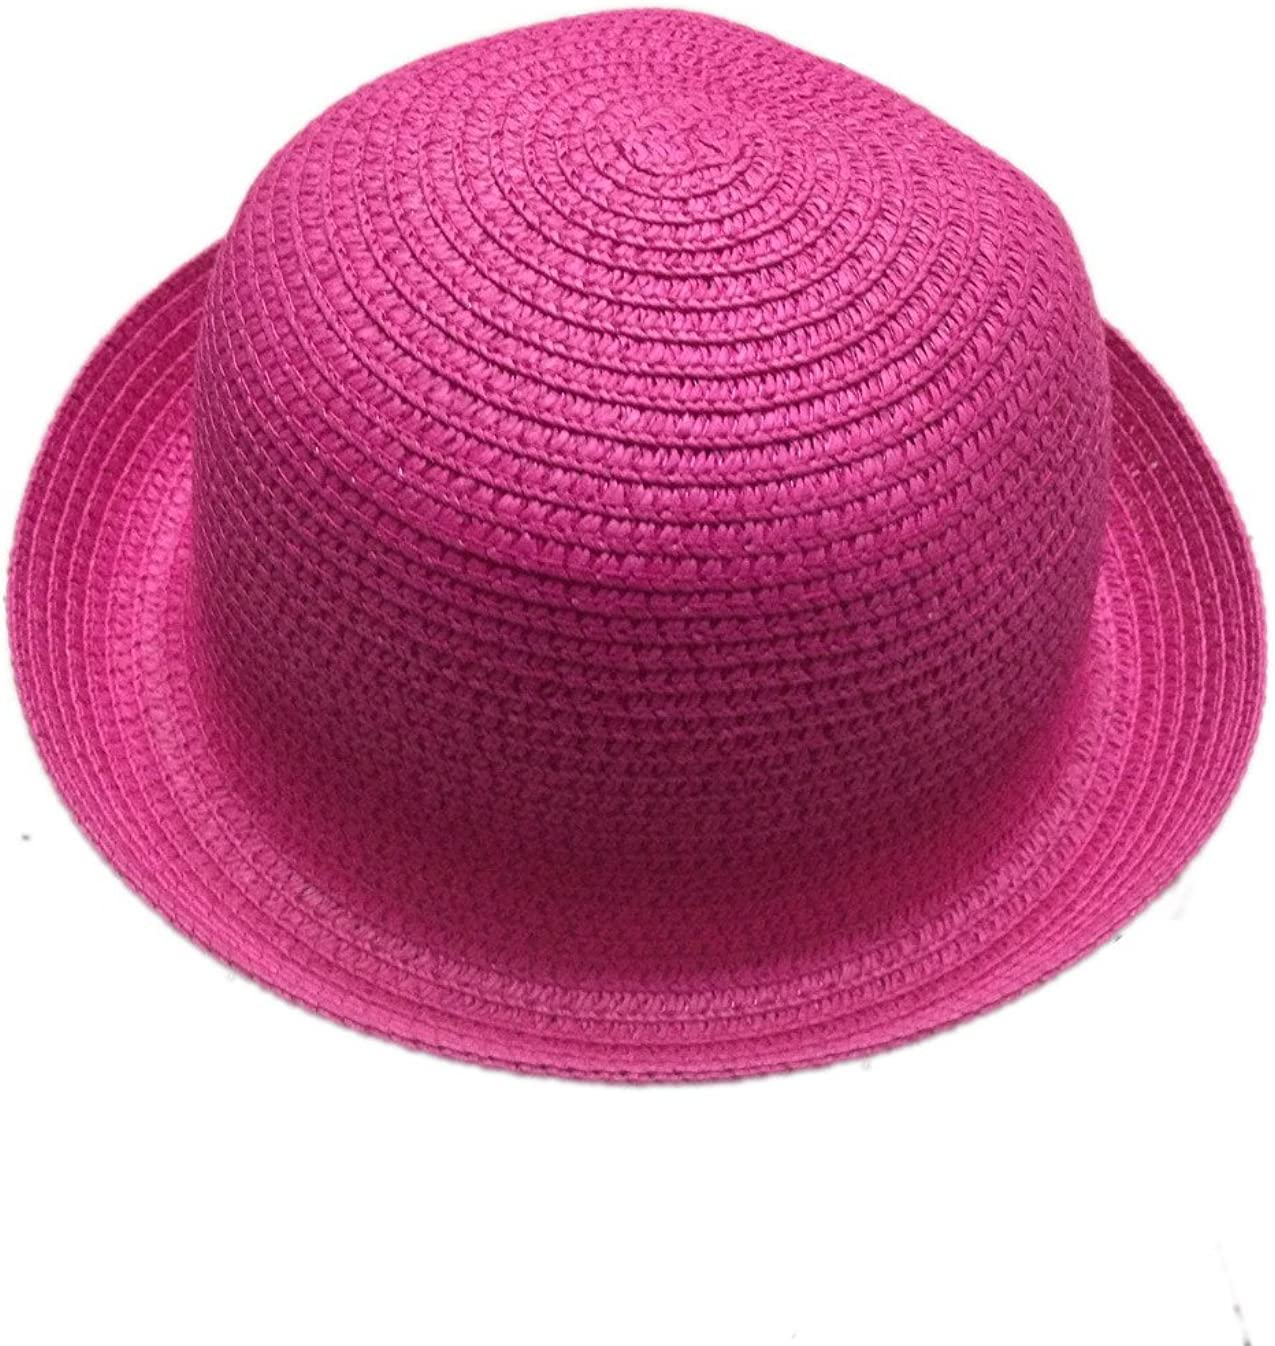 Jtc Child Girls Bowler Hat Caps Round Top Straw Hat Rose